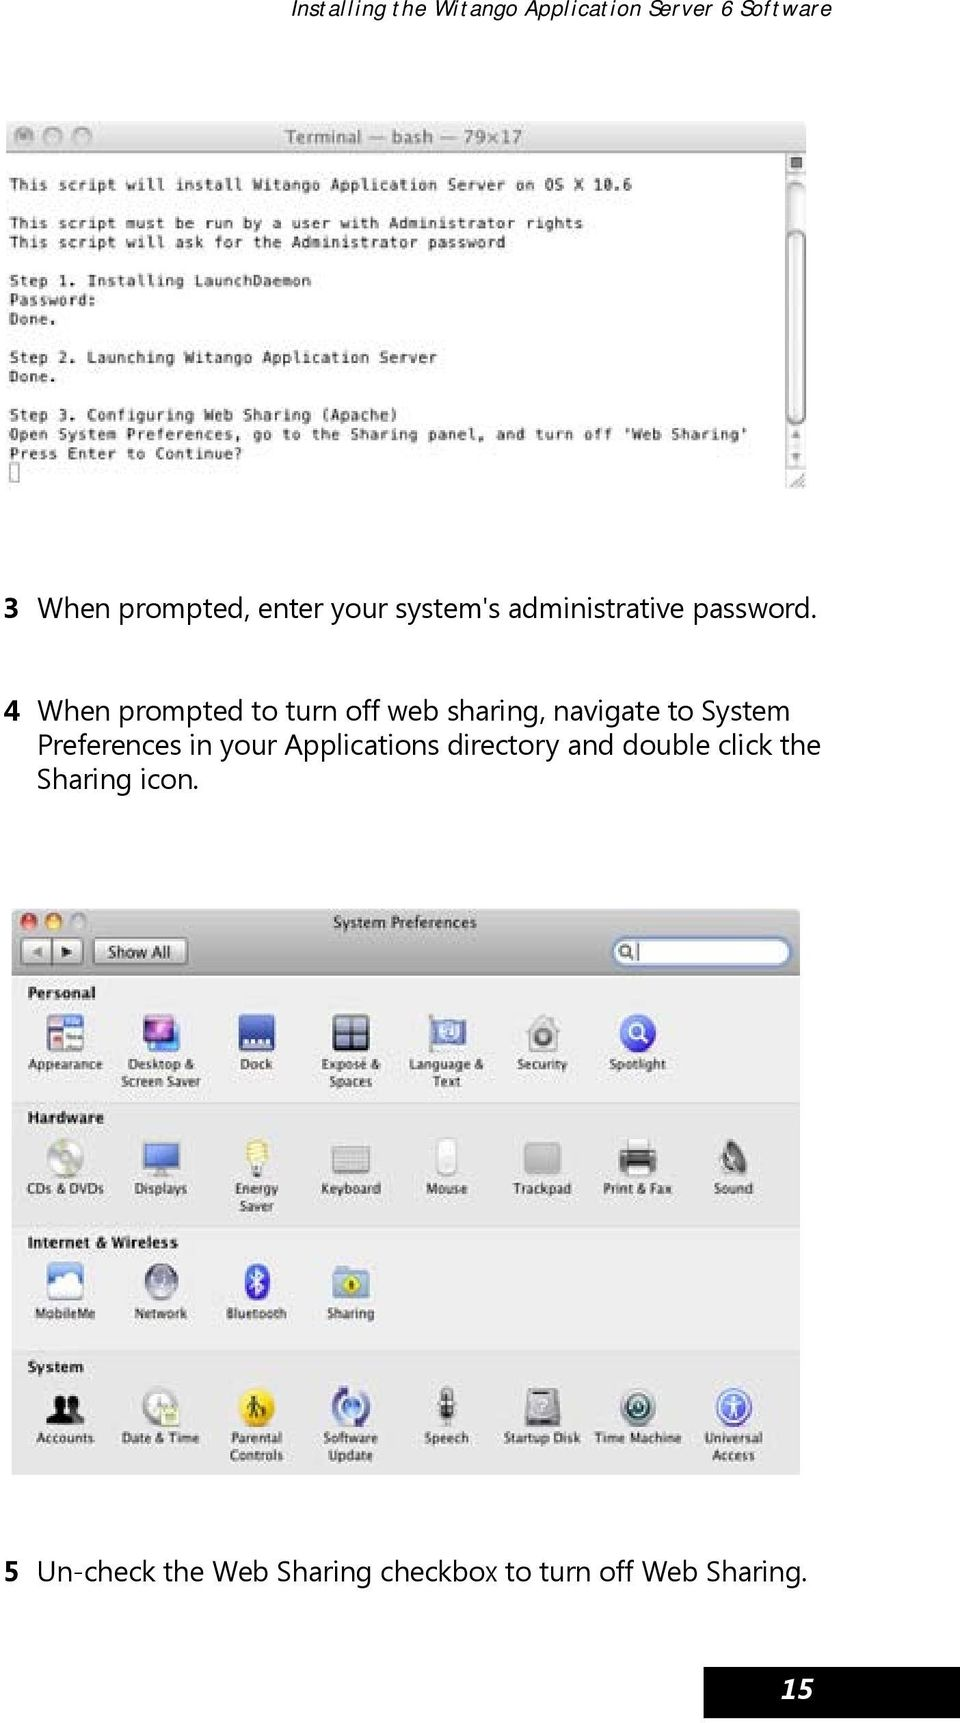 4 When prompted to turn off web sharing, navigate to System Preferences in your